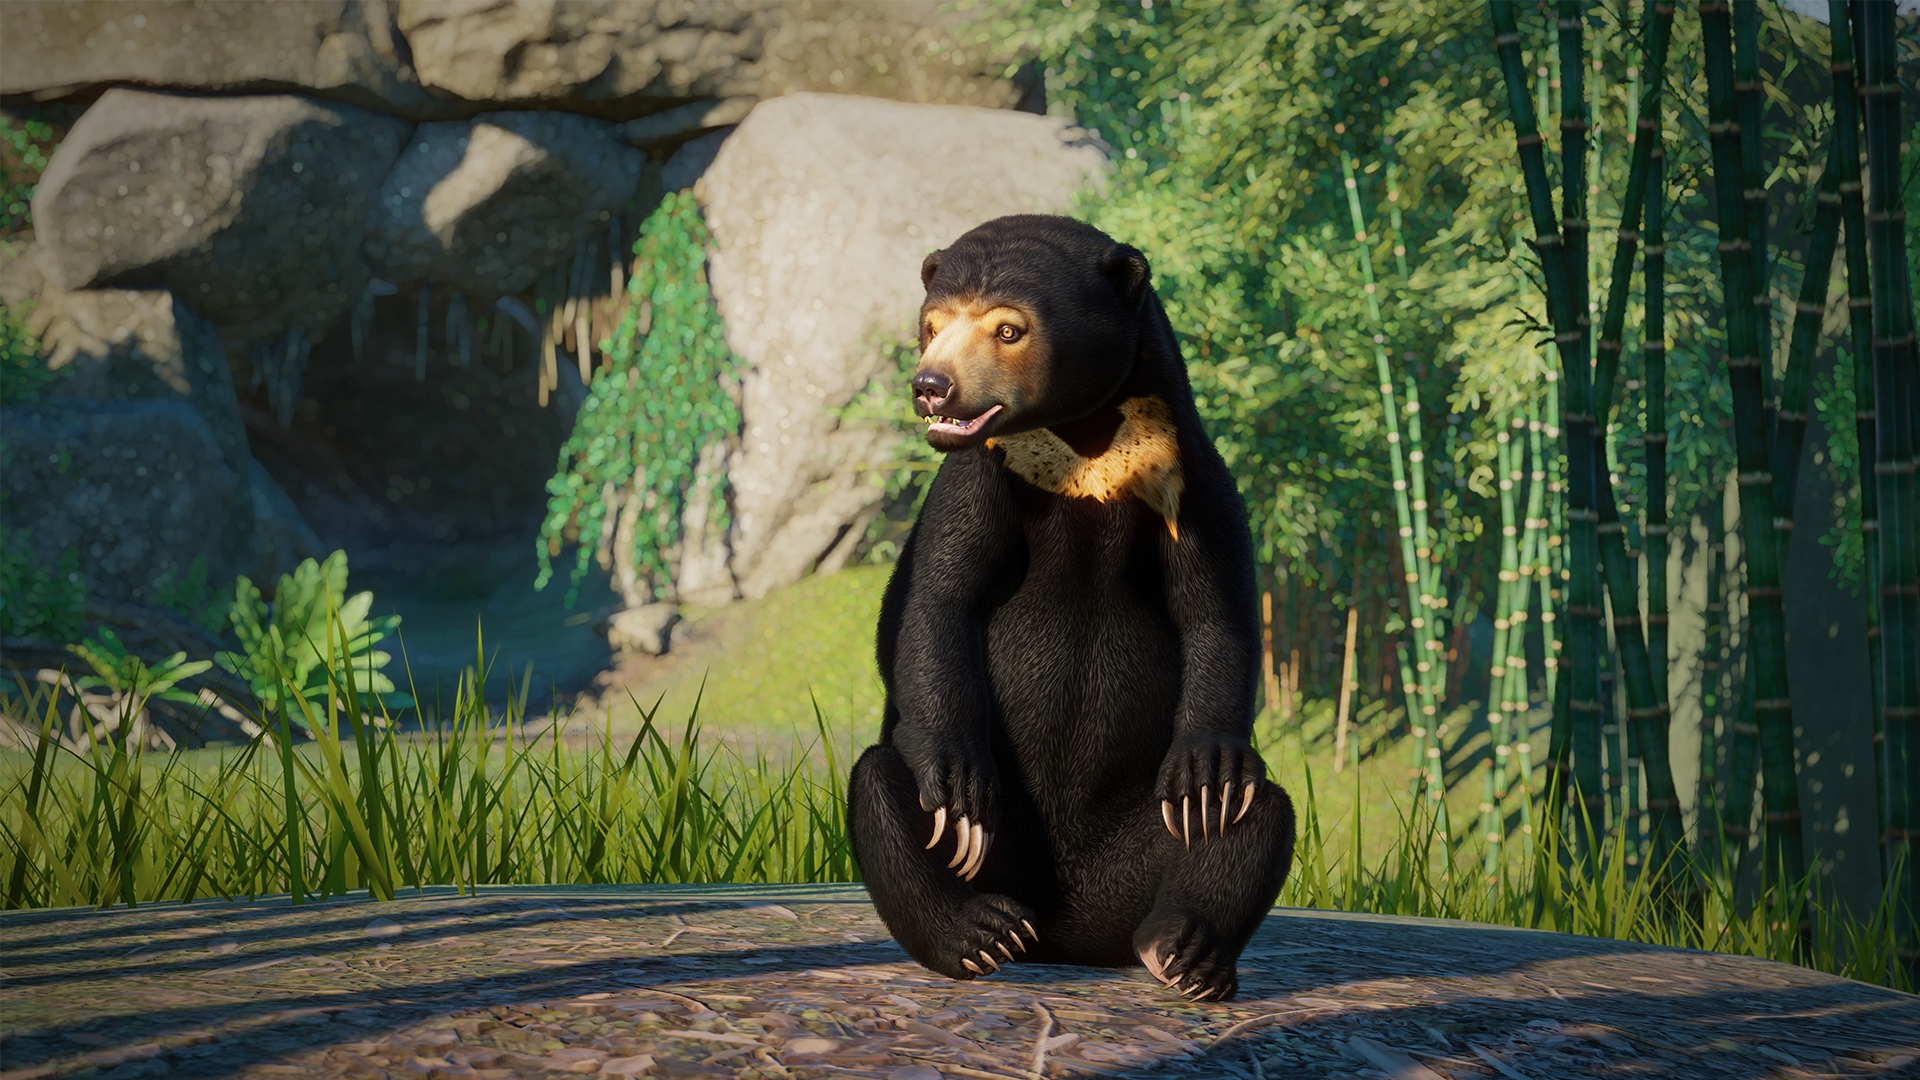 Planet Zoo: Southeast Asia Animal Pack | ROW (f49a8d4e-94d4-414c-b9c7-93f6f817f910)